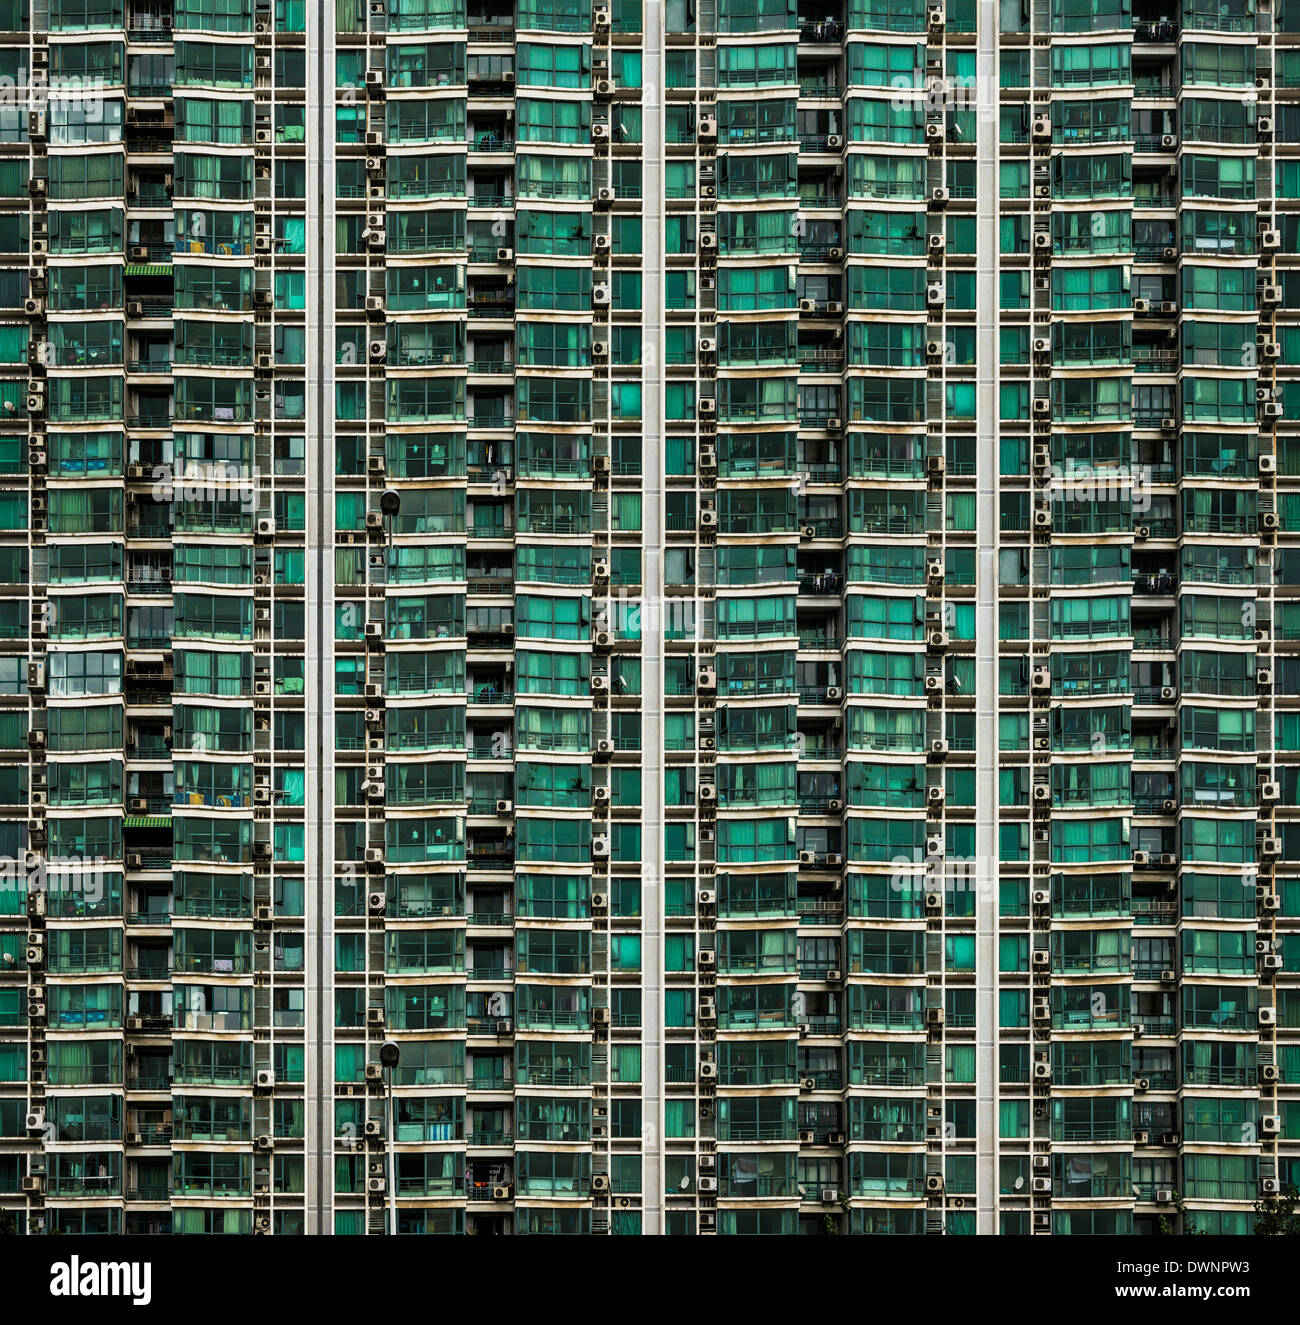 Façade of a high-rise building with balconies and air conditioning units, Shanghai, China - Stock Image